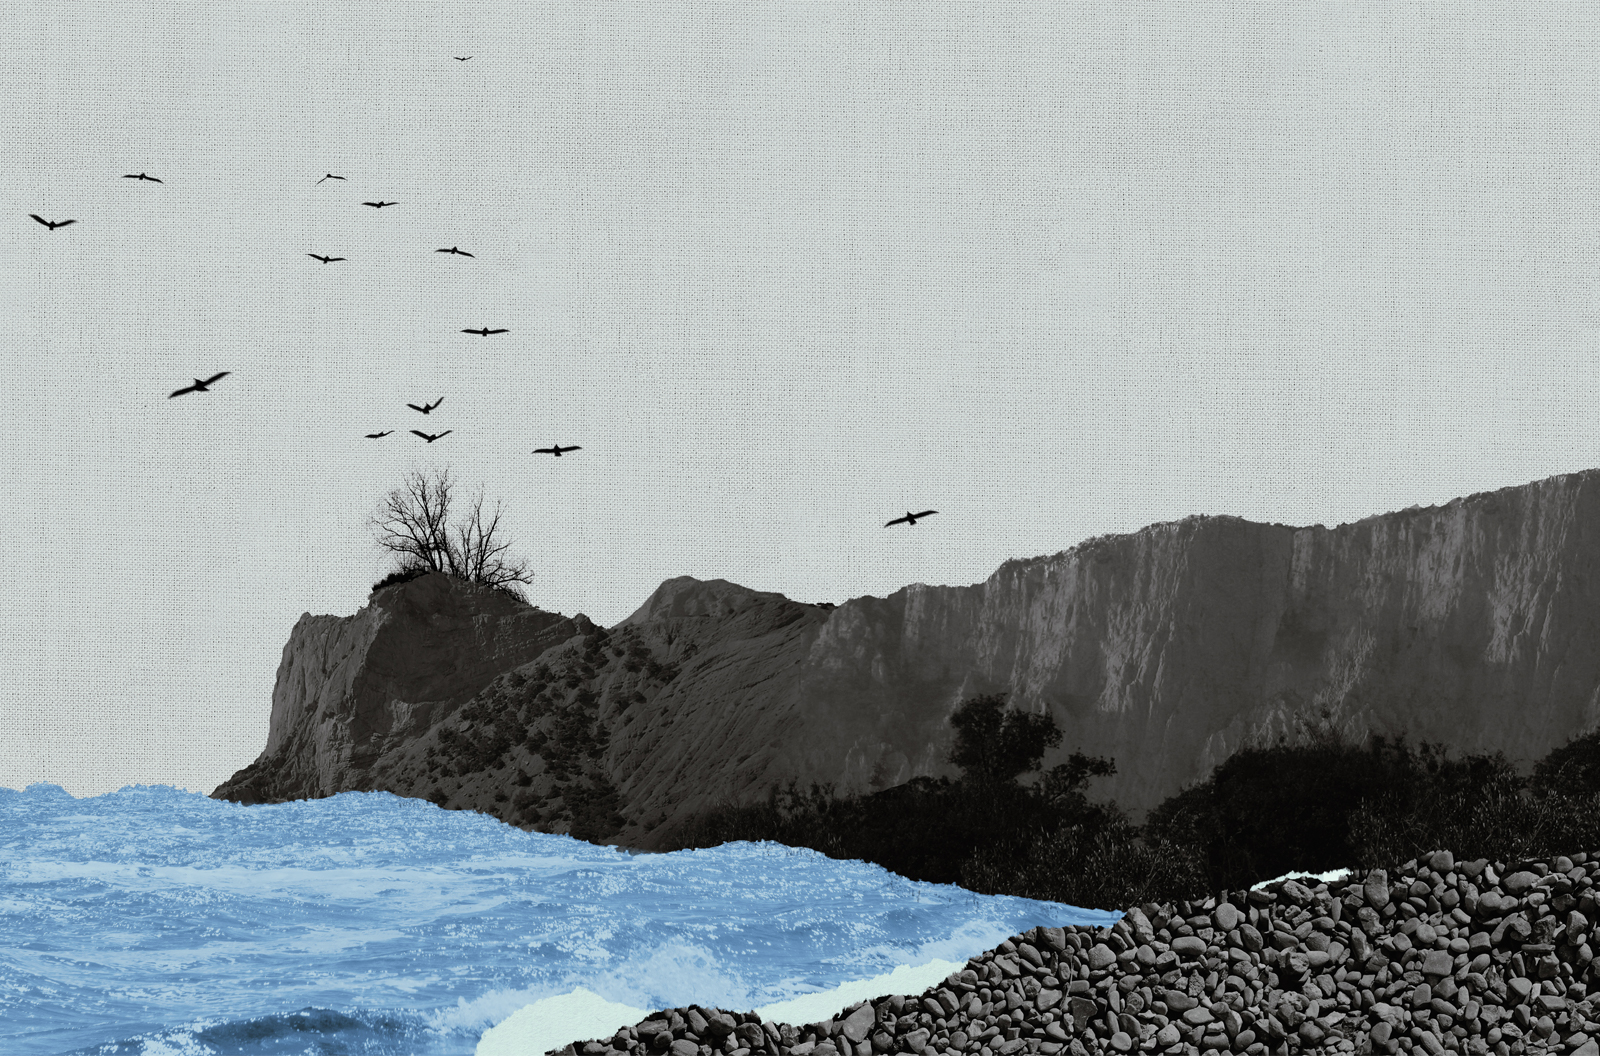 Composition of the sea splashing against rocks made of torn pieces of vintage paper, carton, and torchon.